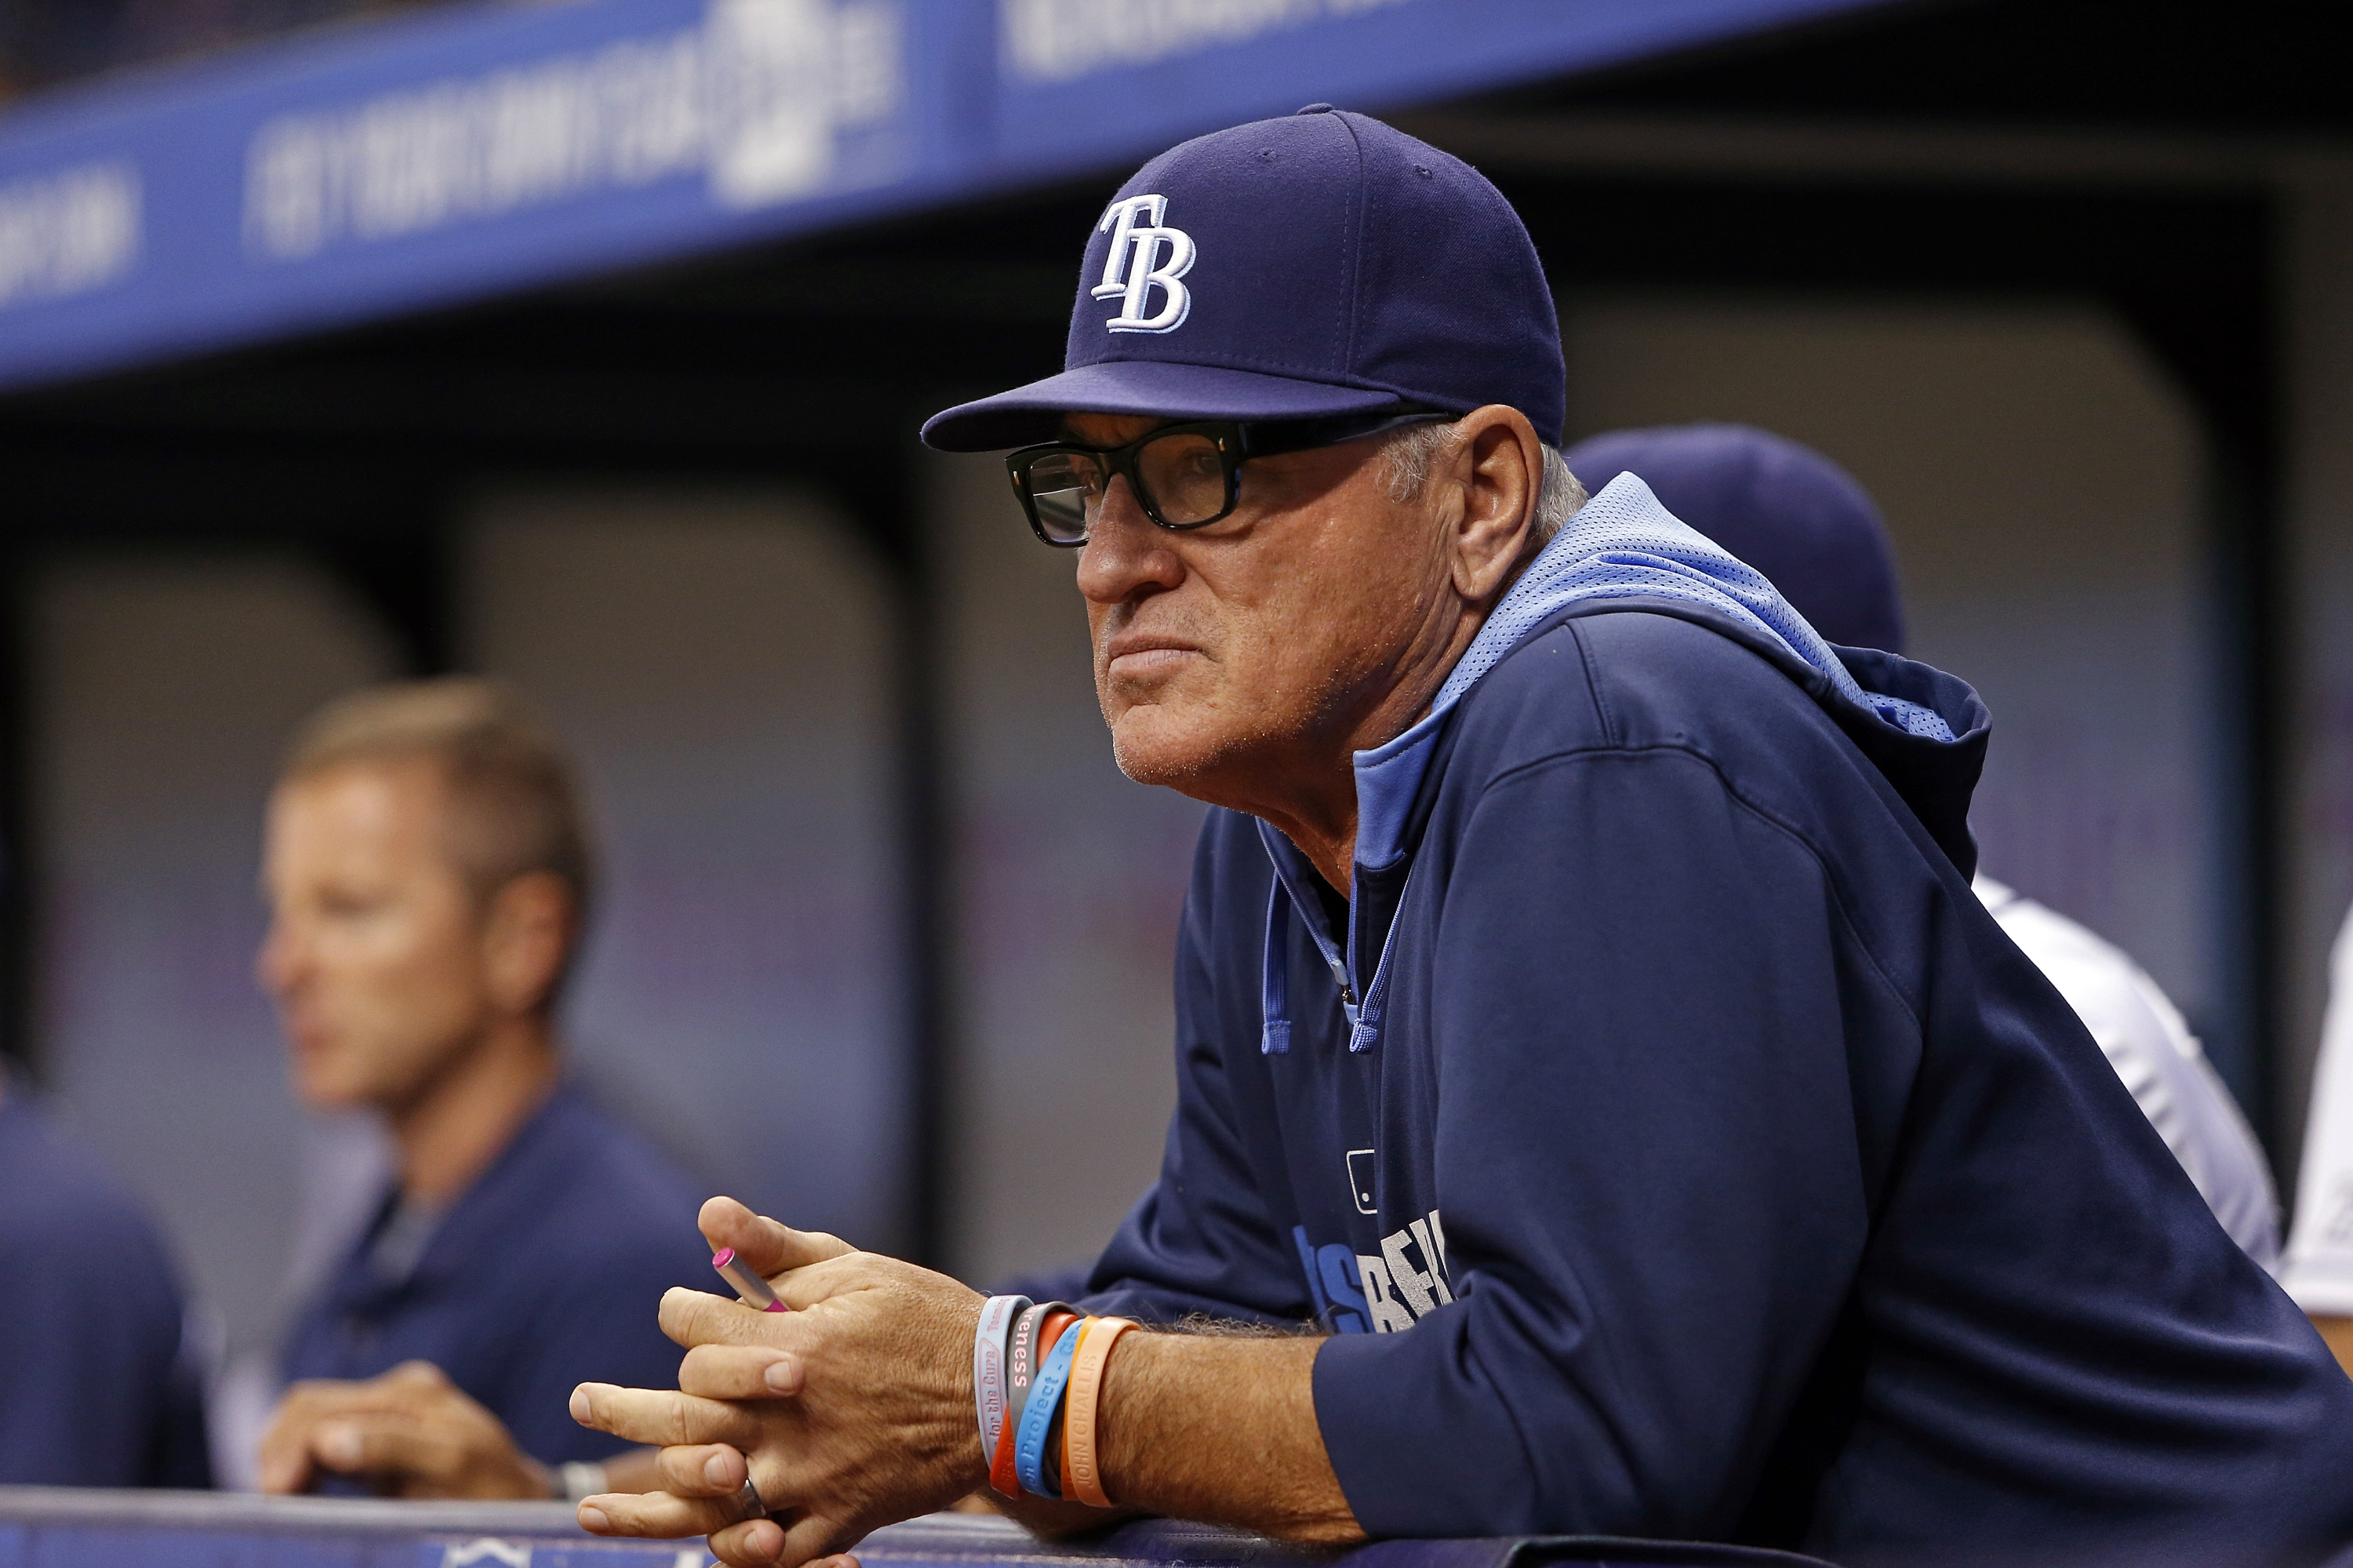 Joe Maddon calls out Rays fans for cheering Derek Jeter